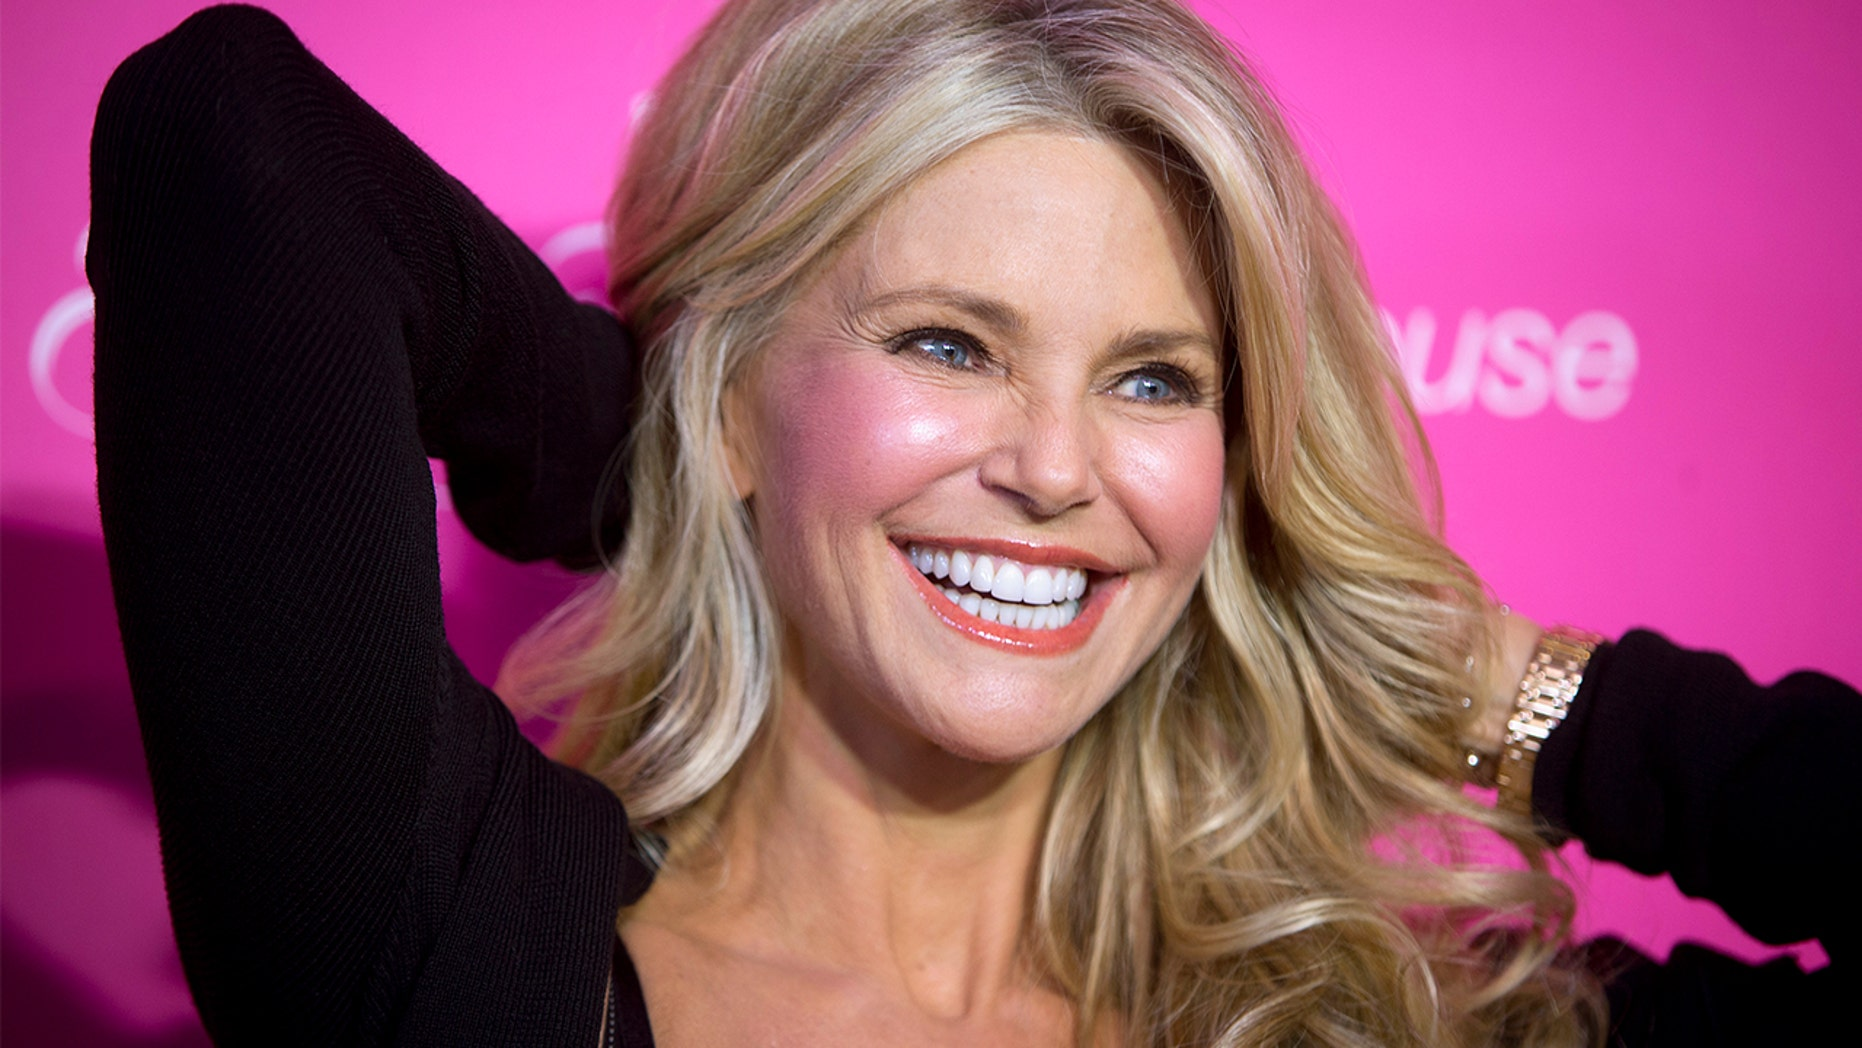 Christie Brinkley thanked Gap for featuring a 63-year-old woman in the company's newest ad